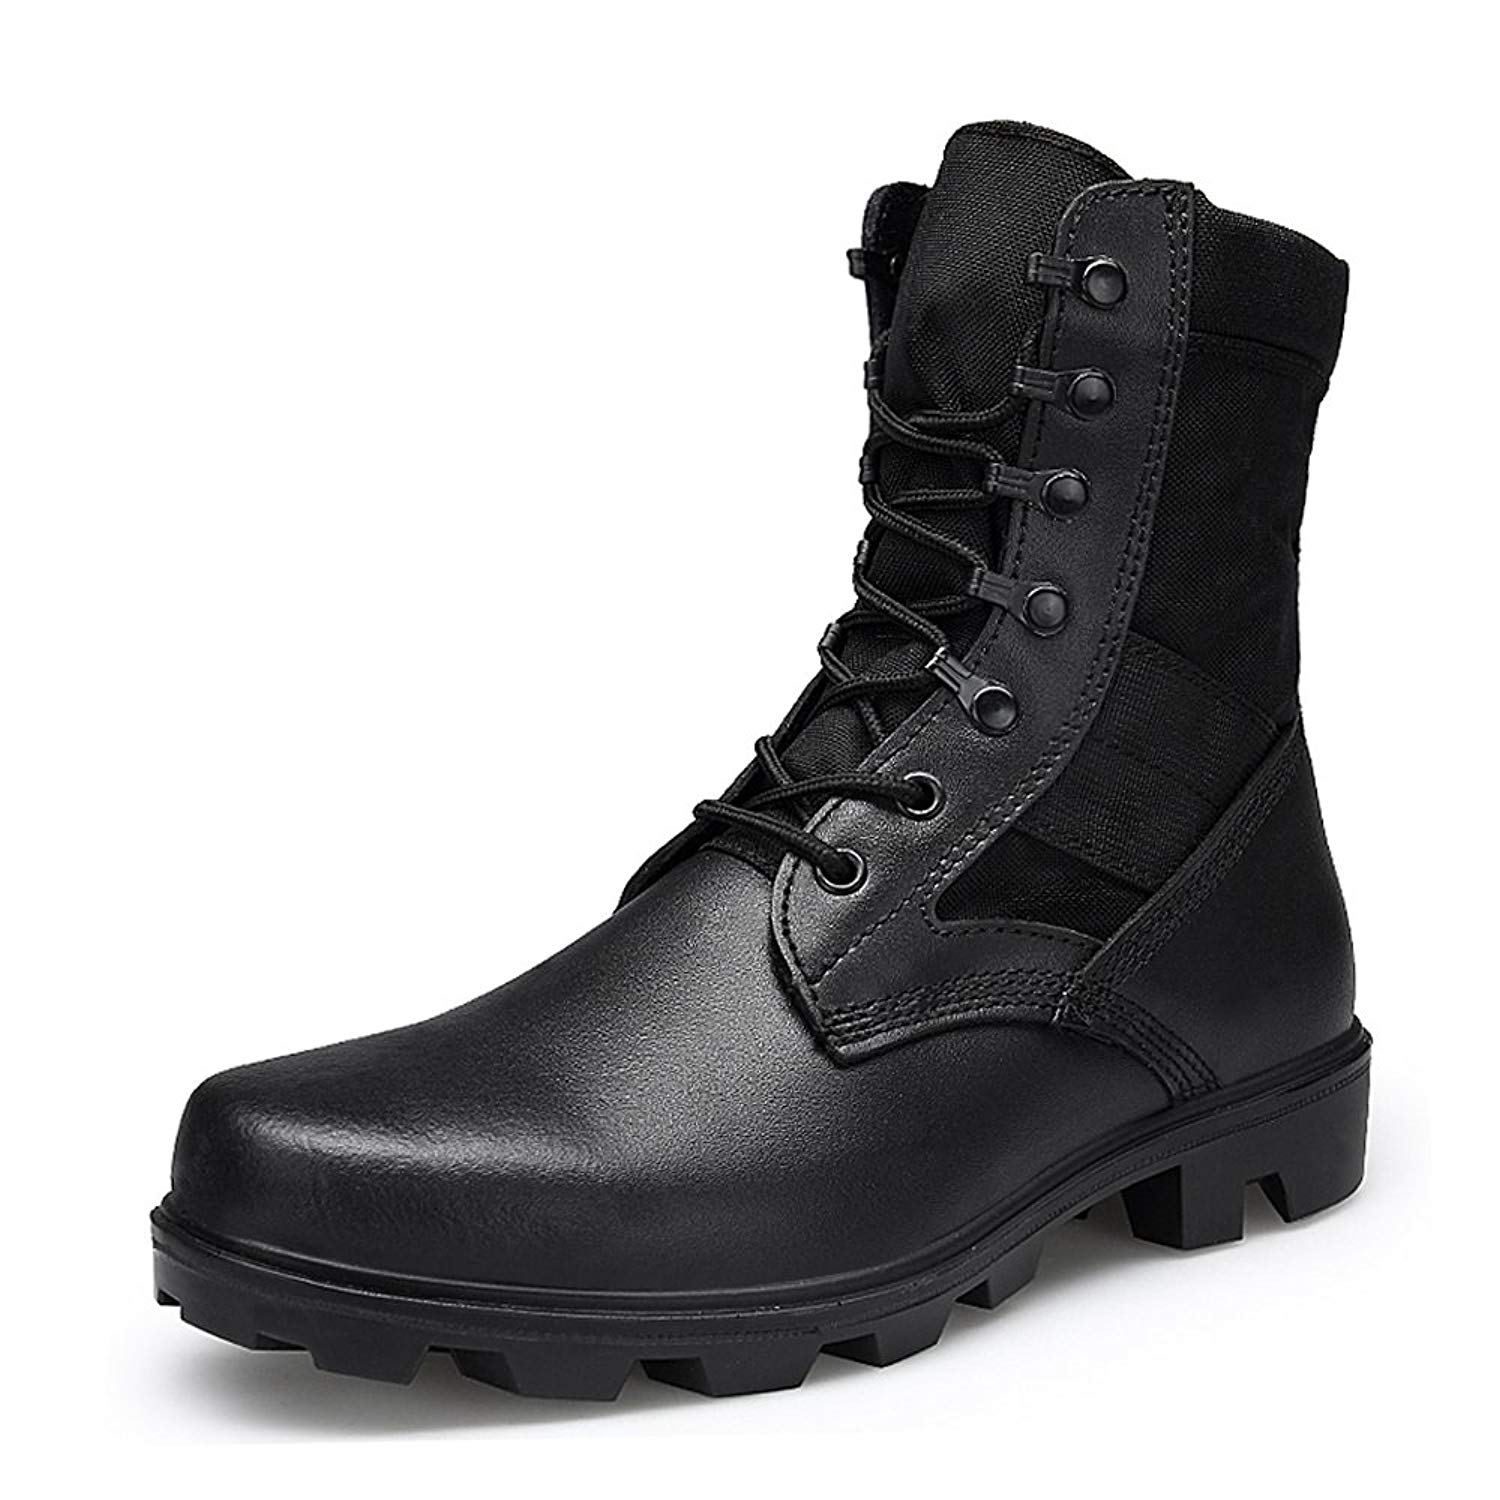 huge selection of 23857 8dd38 Get Quotations · ENLENBENNA Mens Combat Boots Military Boots Tactical  Leather Jungle Boots Desert Boots Black Composite Toe Lightweight